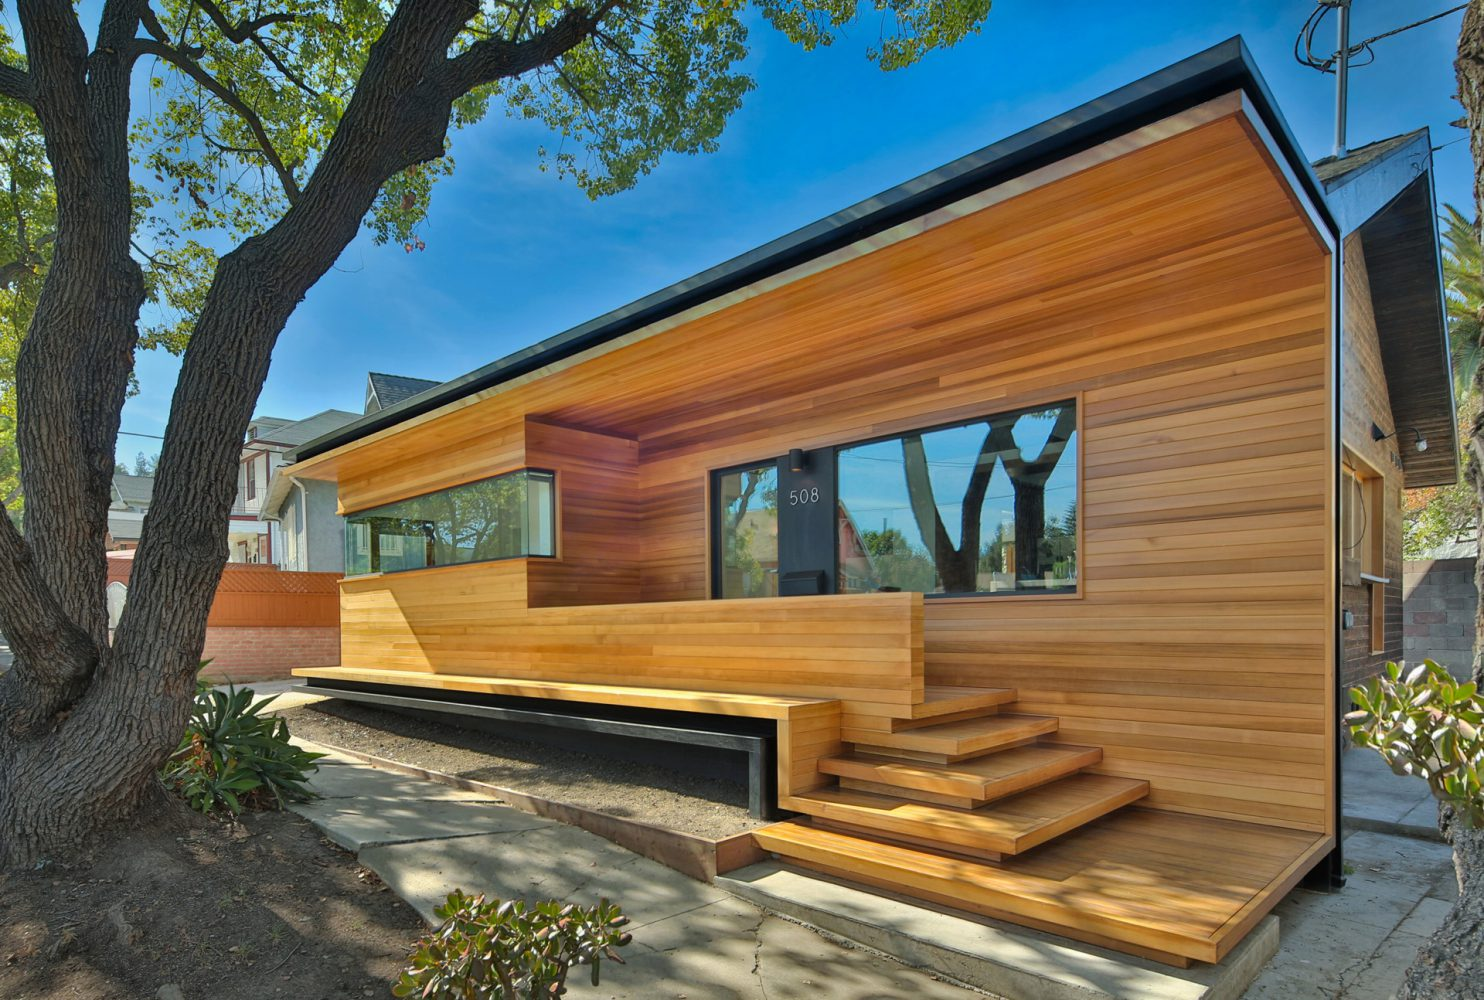 Renovated wooden bungalow